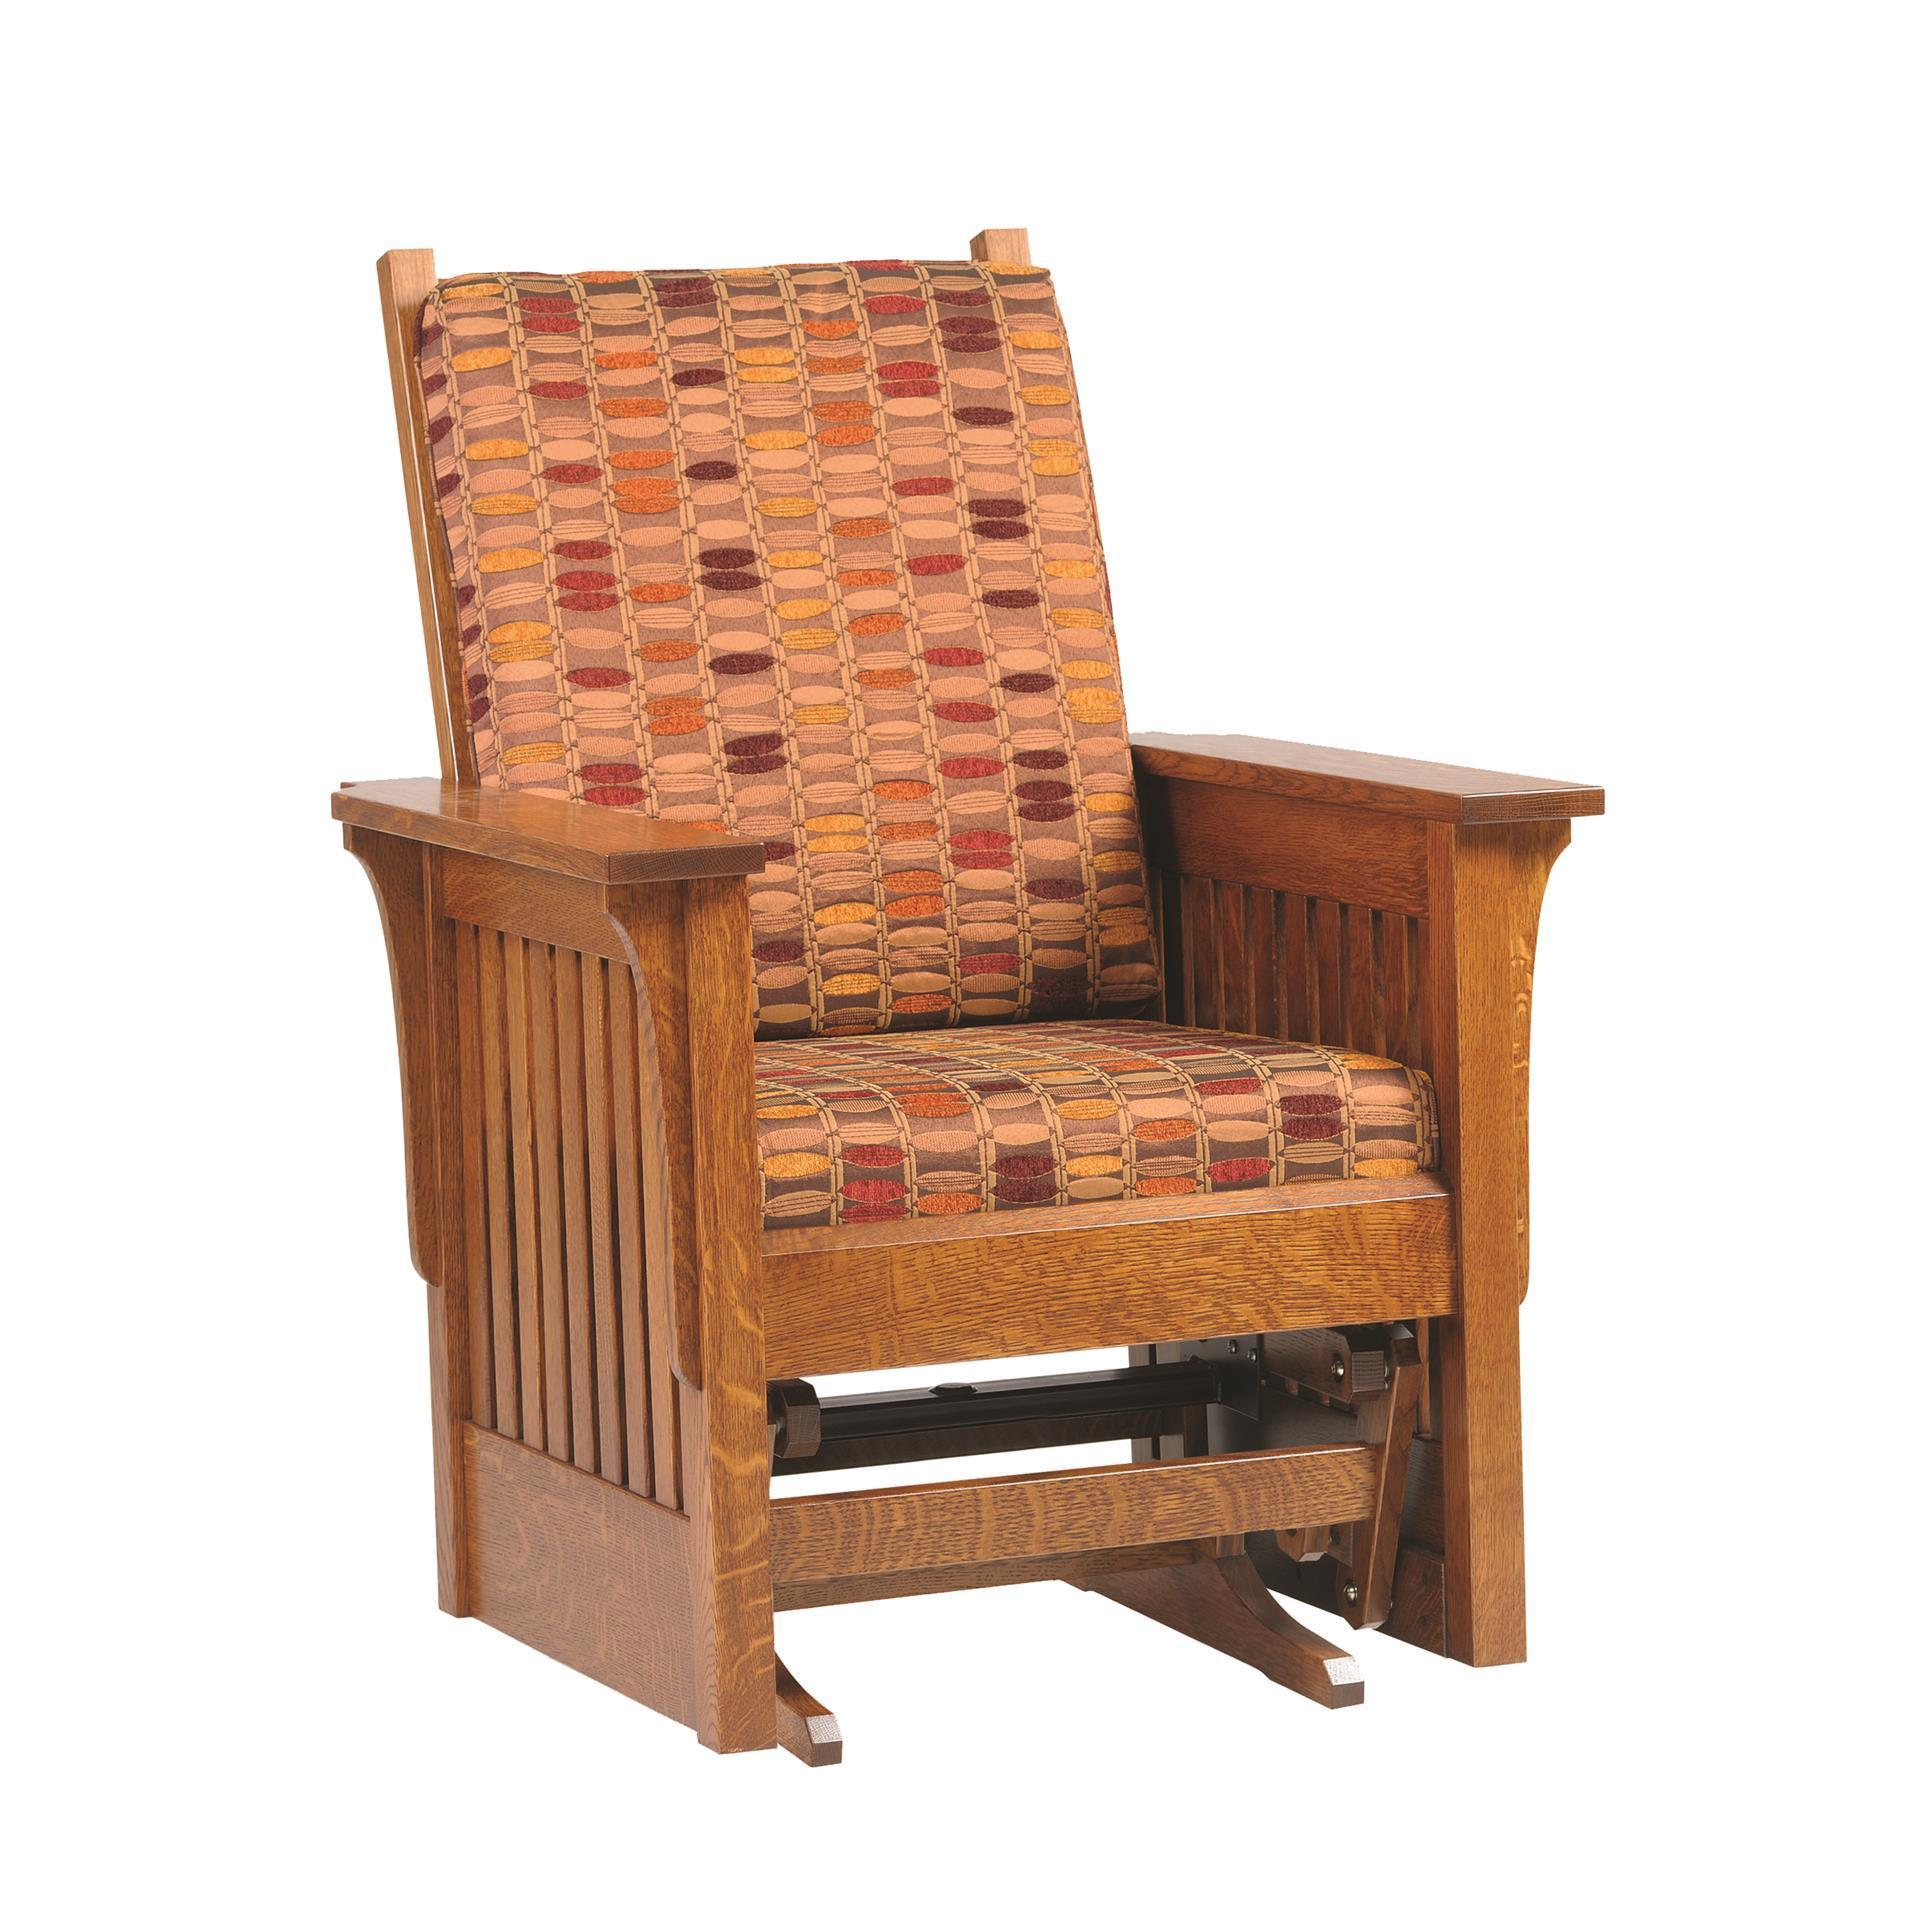 Wooden Mission Glider Chair From Dutchcrafters Amish Furniture